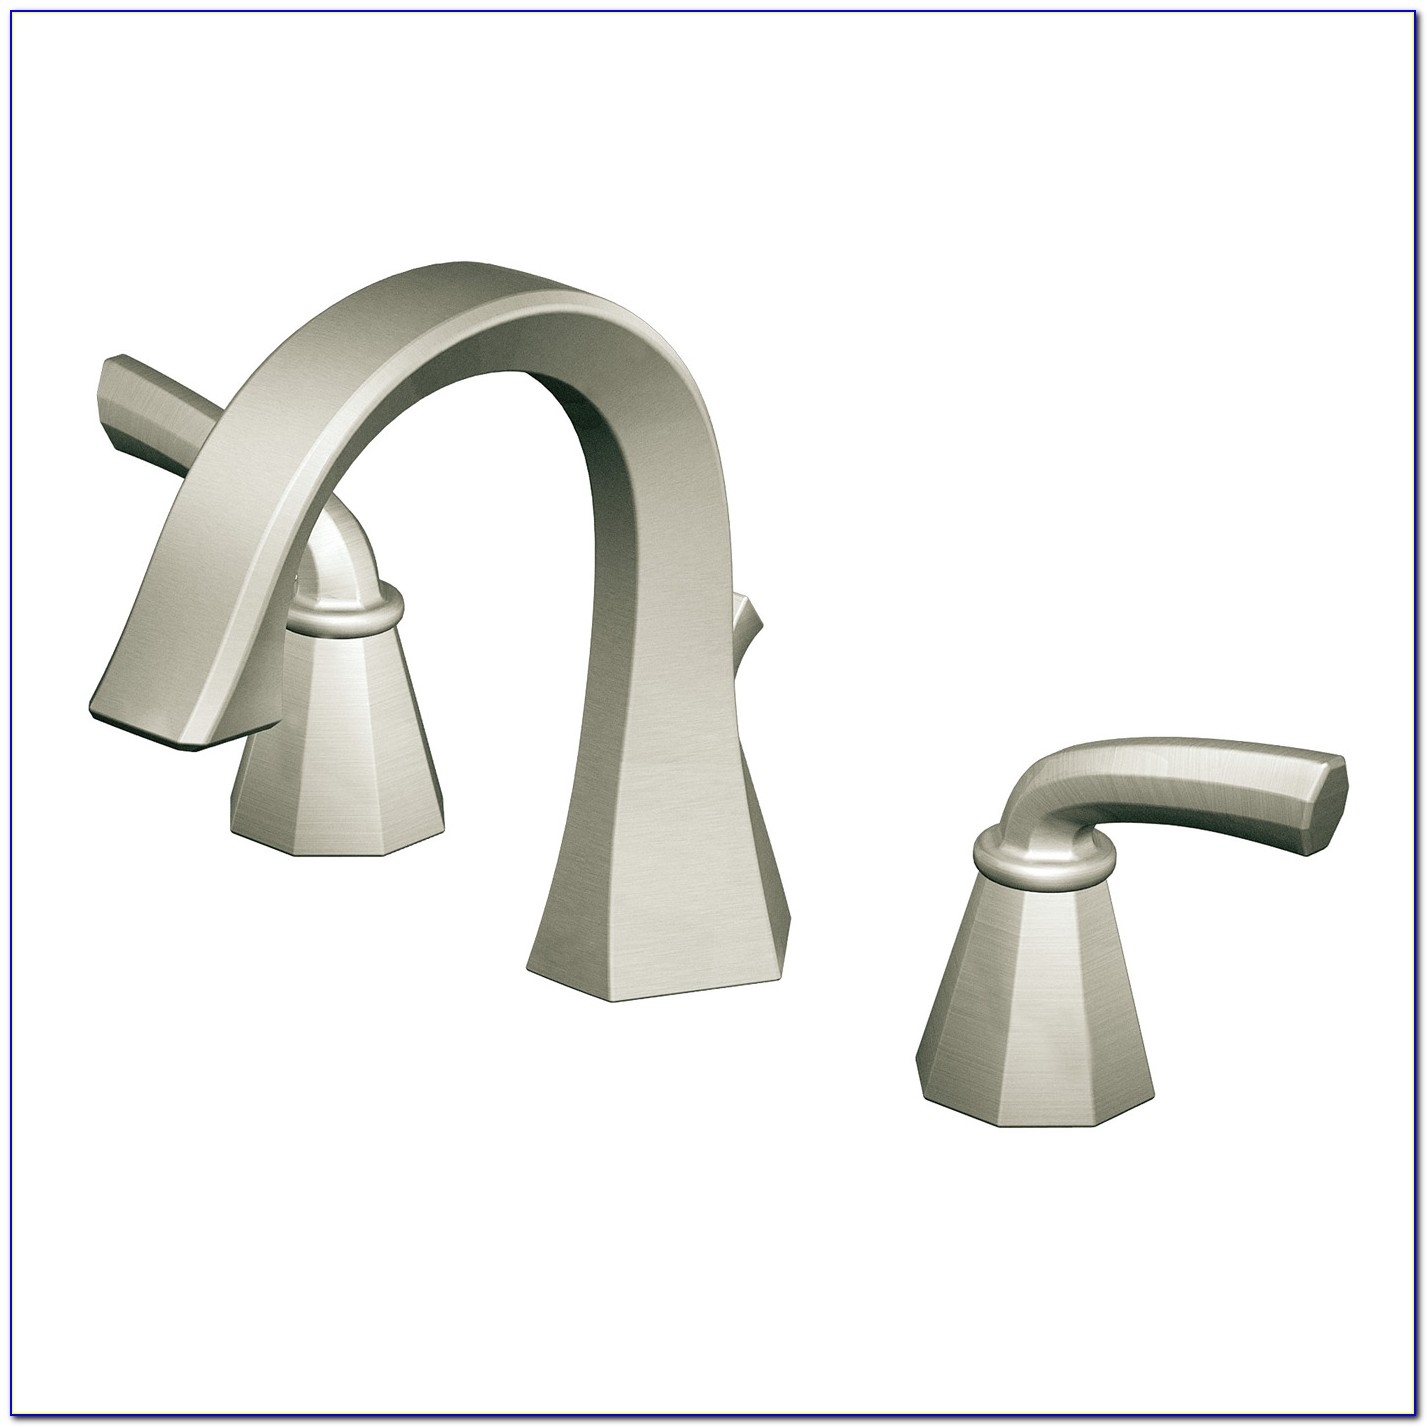 Moen High Arc Bathroom Faucet